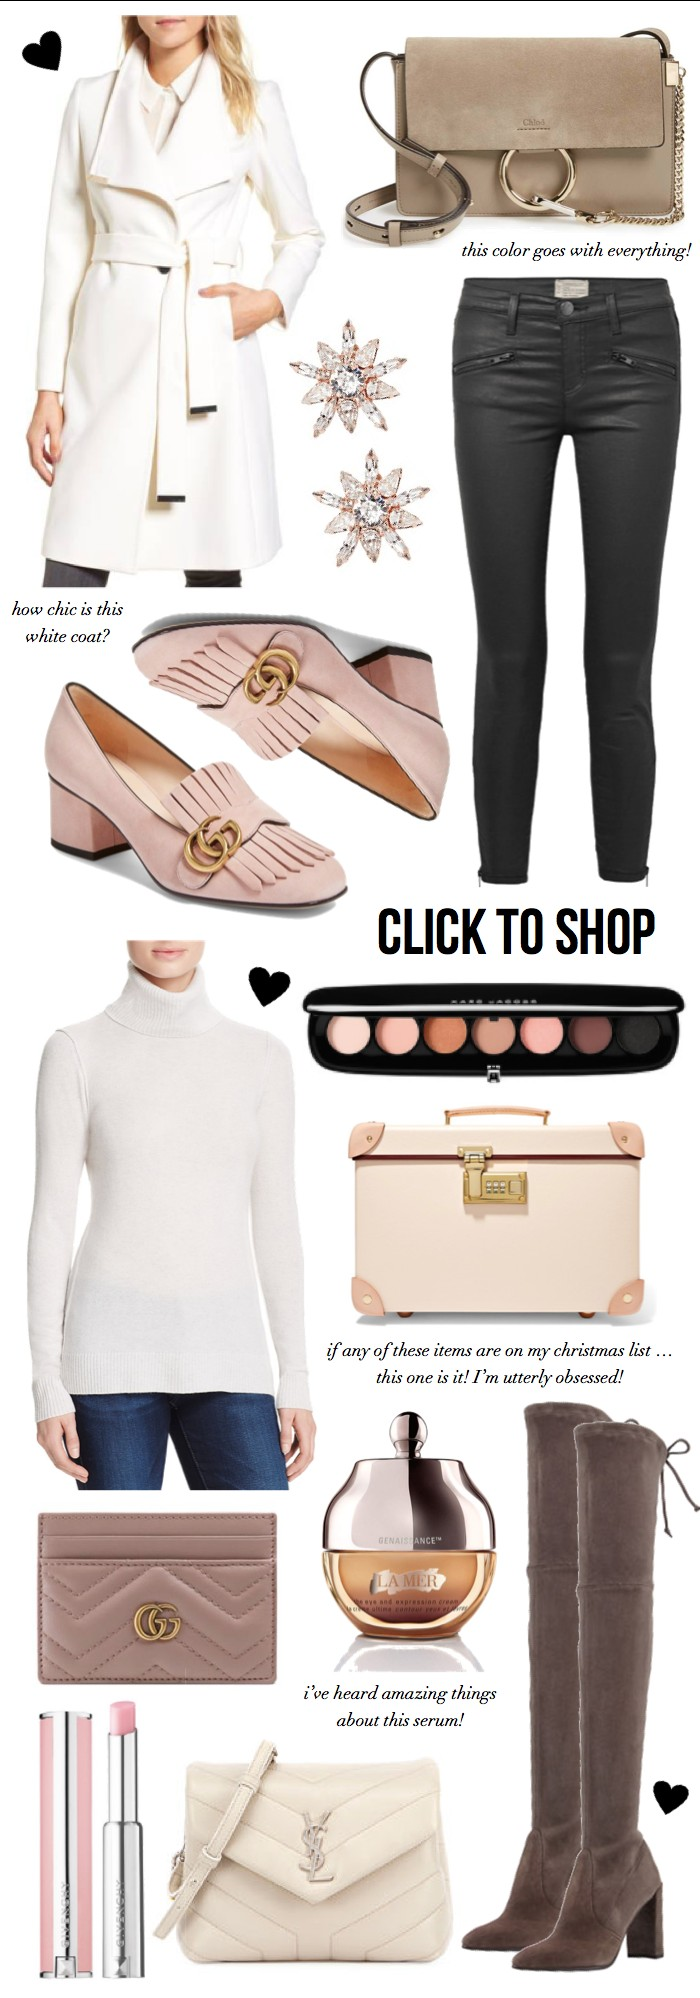 Gift Guides Alyson Haley